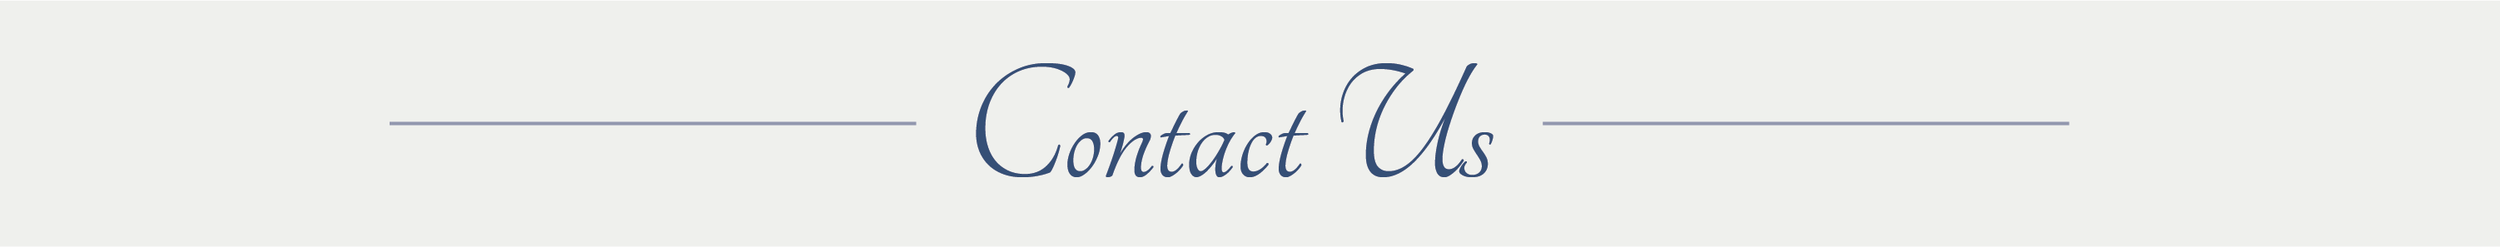 CONTACT US@4x.png